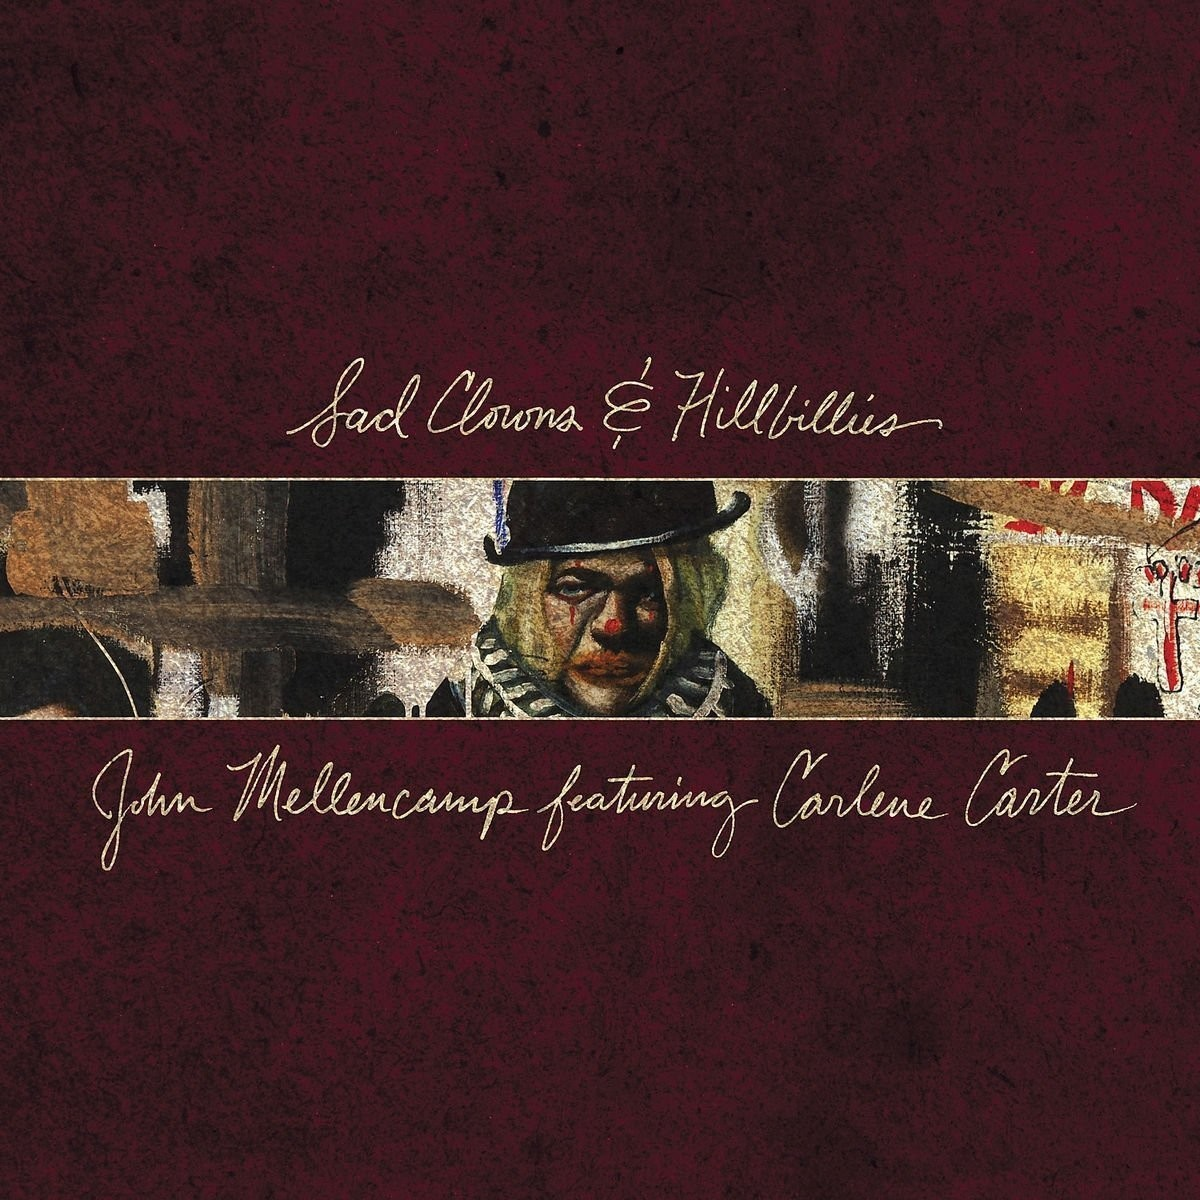 John Mellencamp - Sad Clowns & Hillbillies LP